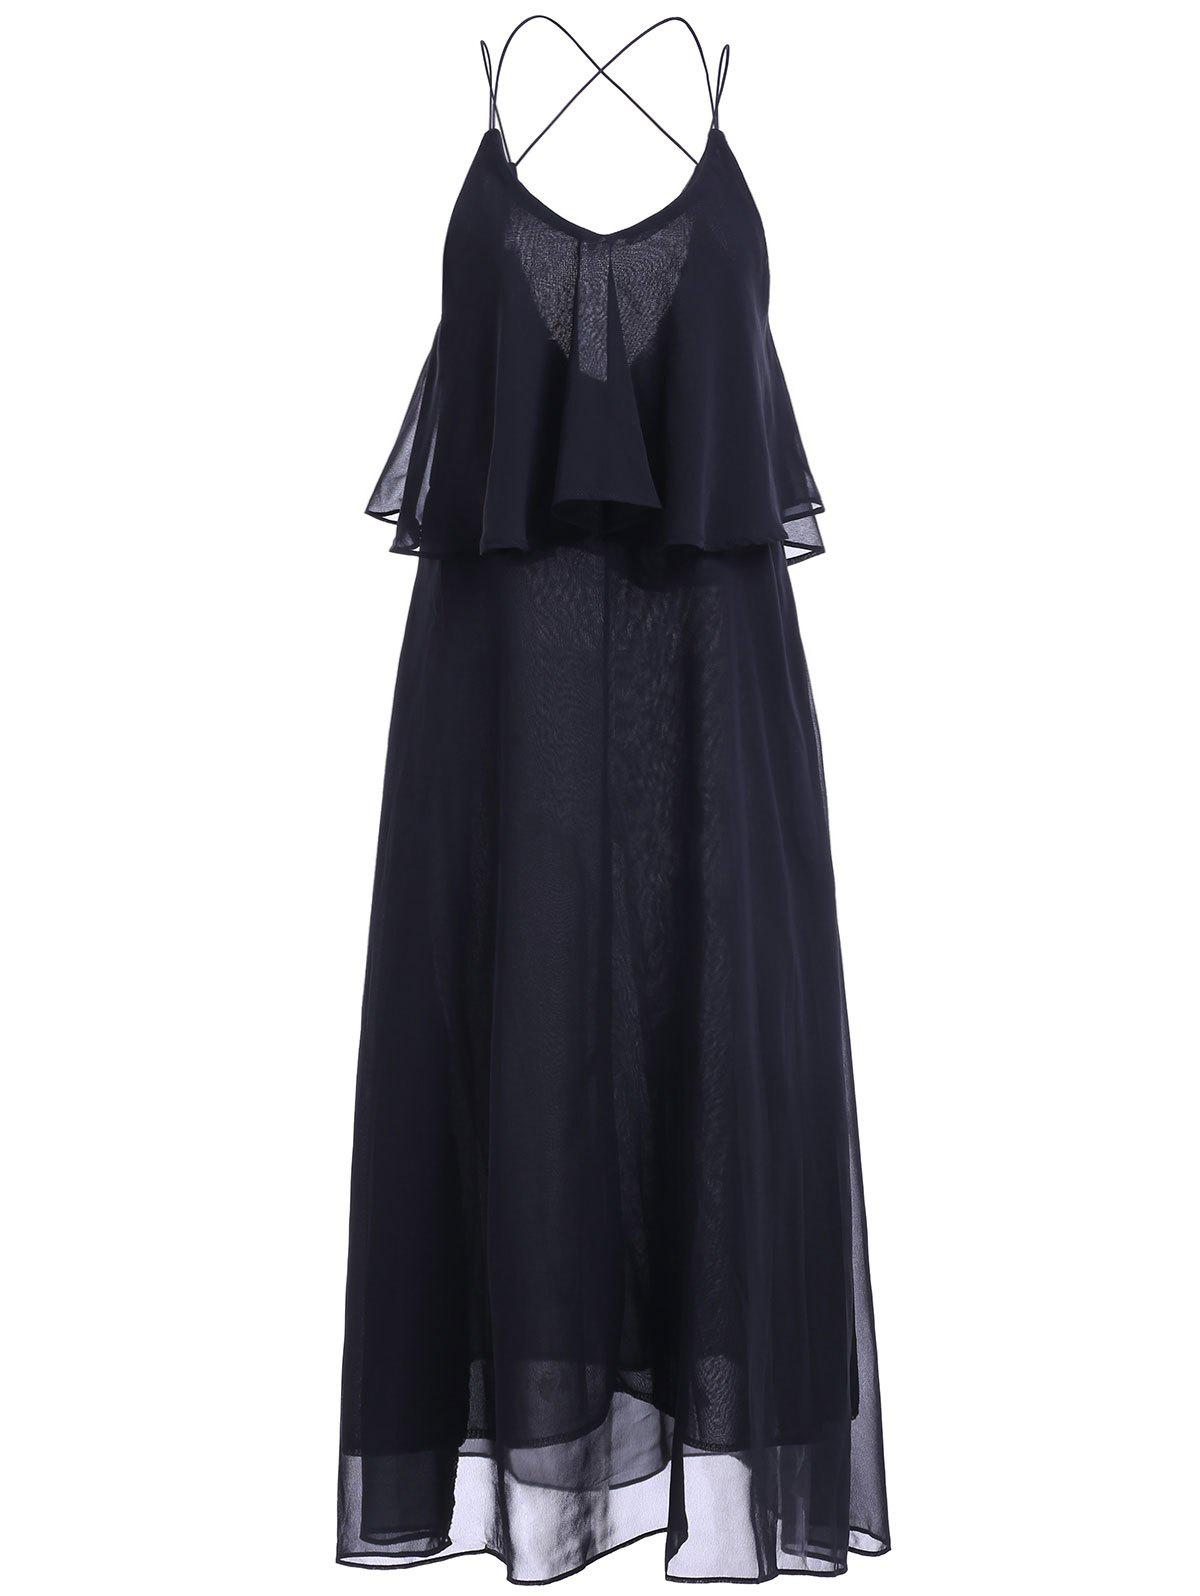 Casual Women's Solid Color V-Neck Spaghetti Strap Flounce Backless Maxi Dress - BLACK ONE SIZE(FIT SIZE XS TO M)